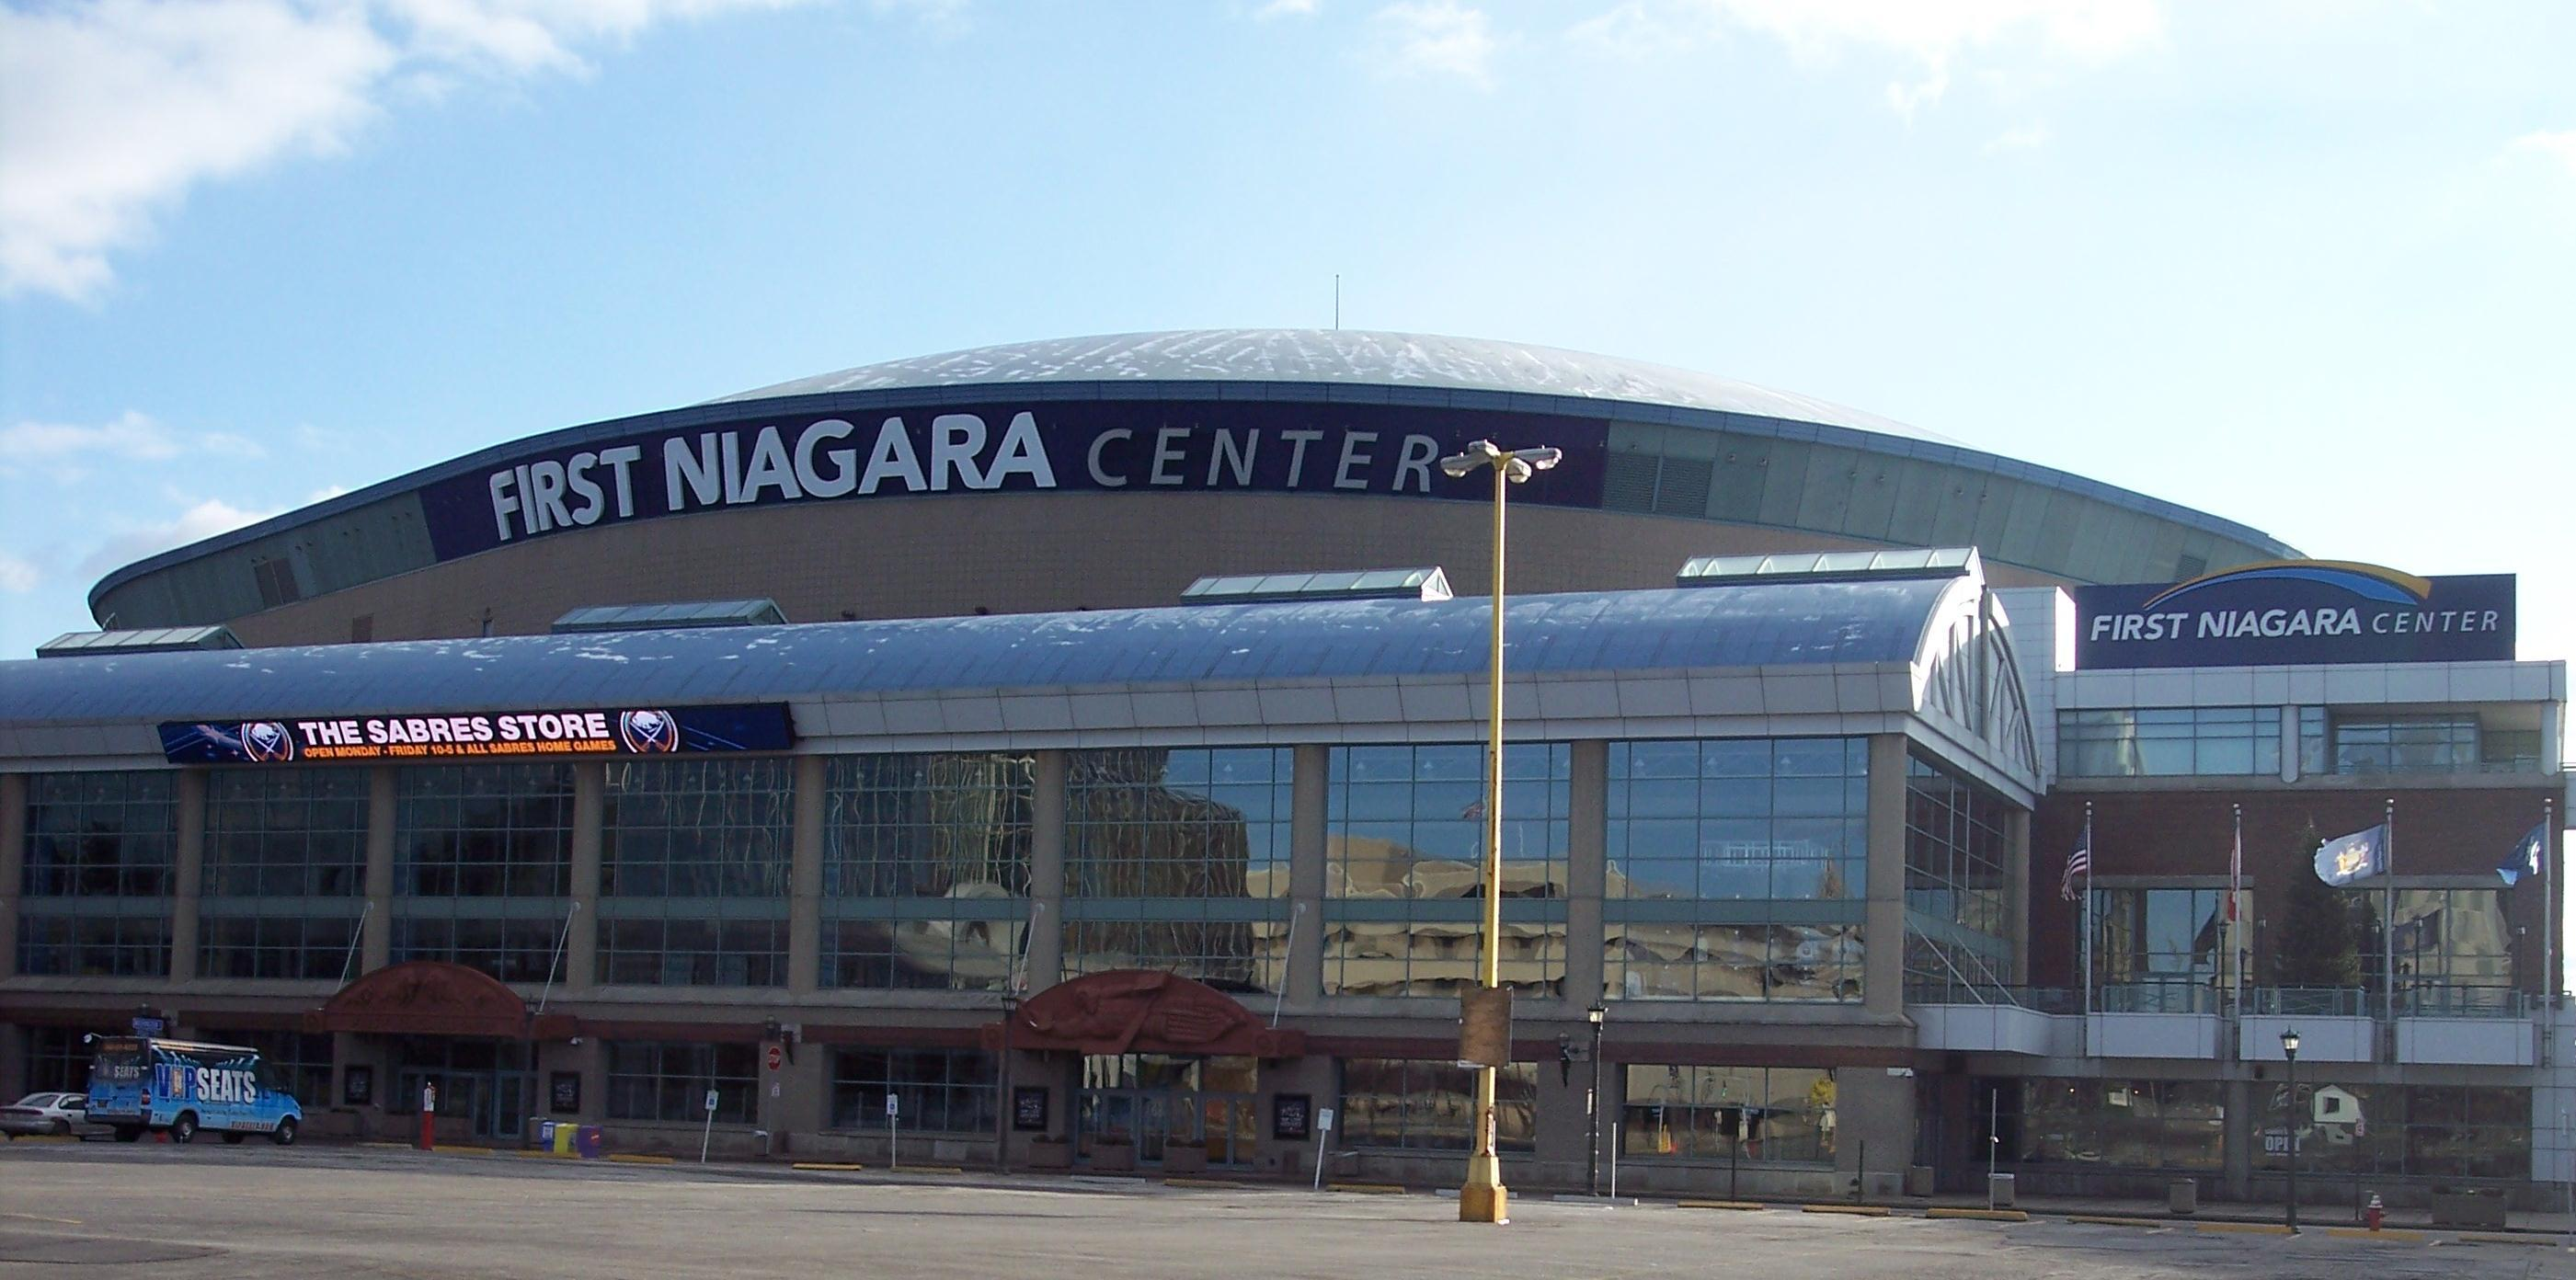 <a href='http://www.ticketsreview.com/first-niagara-center.html'>First Niagara Center tickets</a>